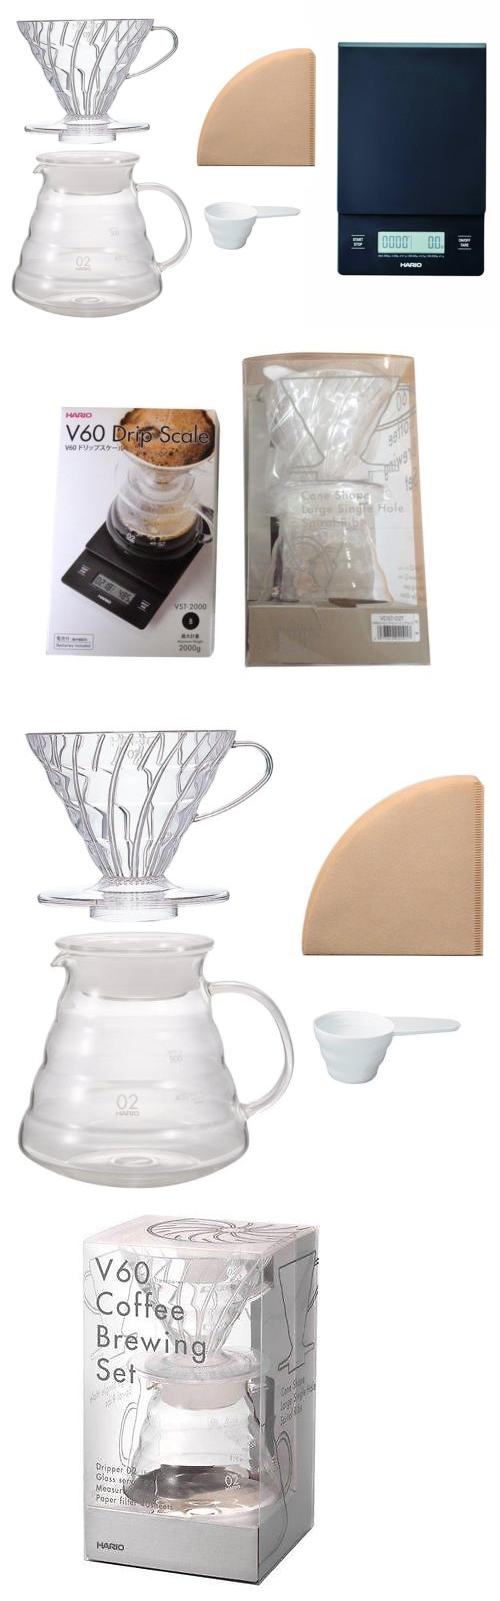 Other Coffee And Tea Makers 159902 Hario V60 Scale Brewing Set Drip Vst 2000b For Careful Measuring